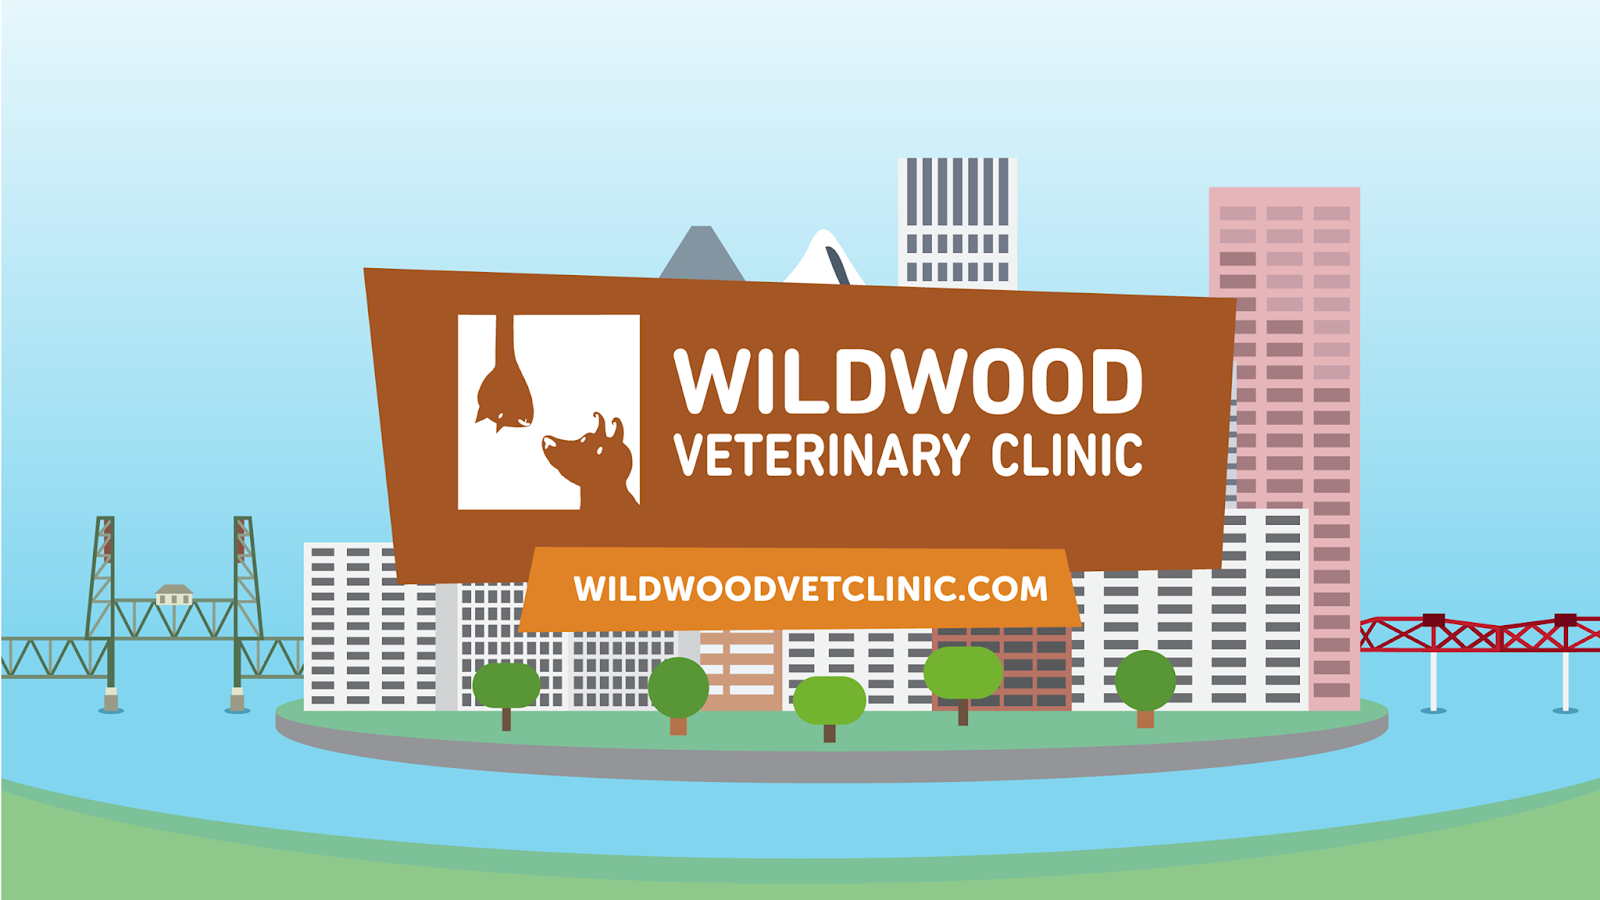 Wildwood Veterinary Clinic logo, cartoonish drawing of a city in the middle of water with two bridges on either end.